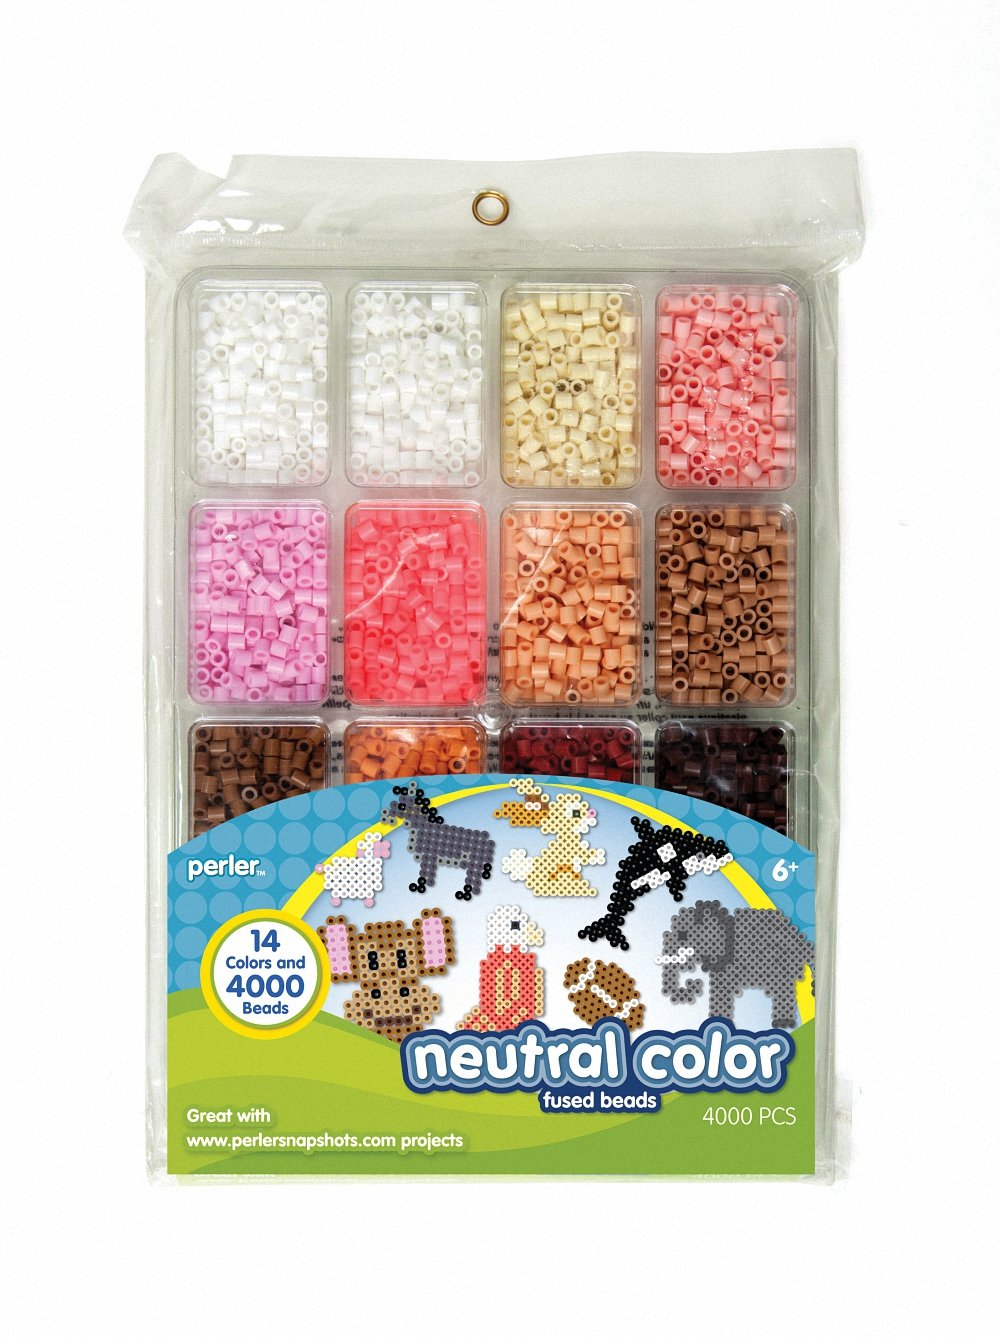 galleon perler fused bead tray 4000 pkg neutral color